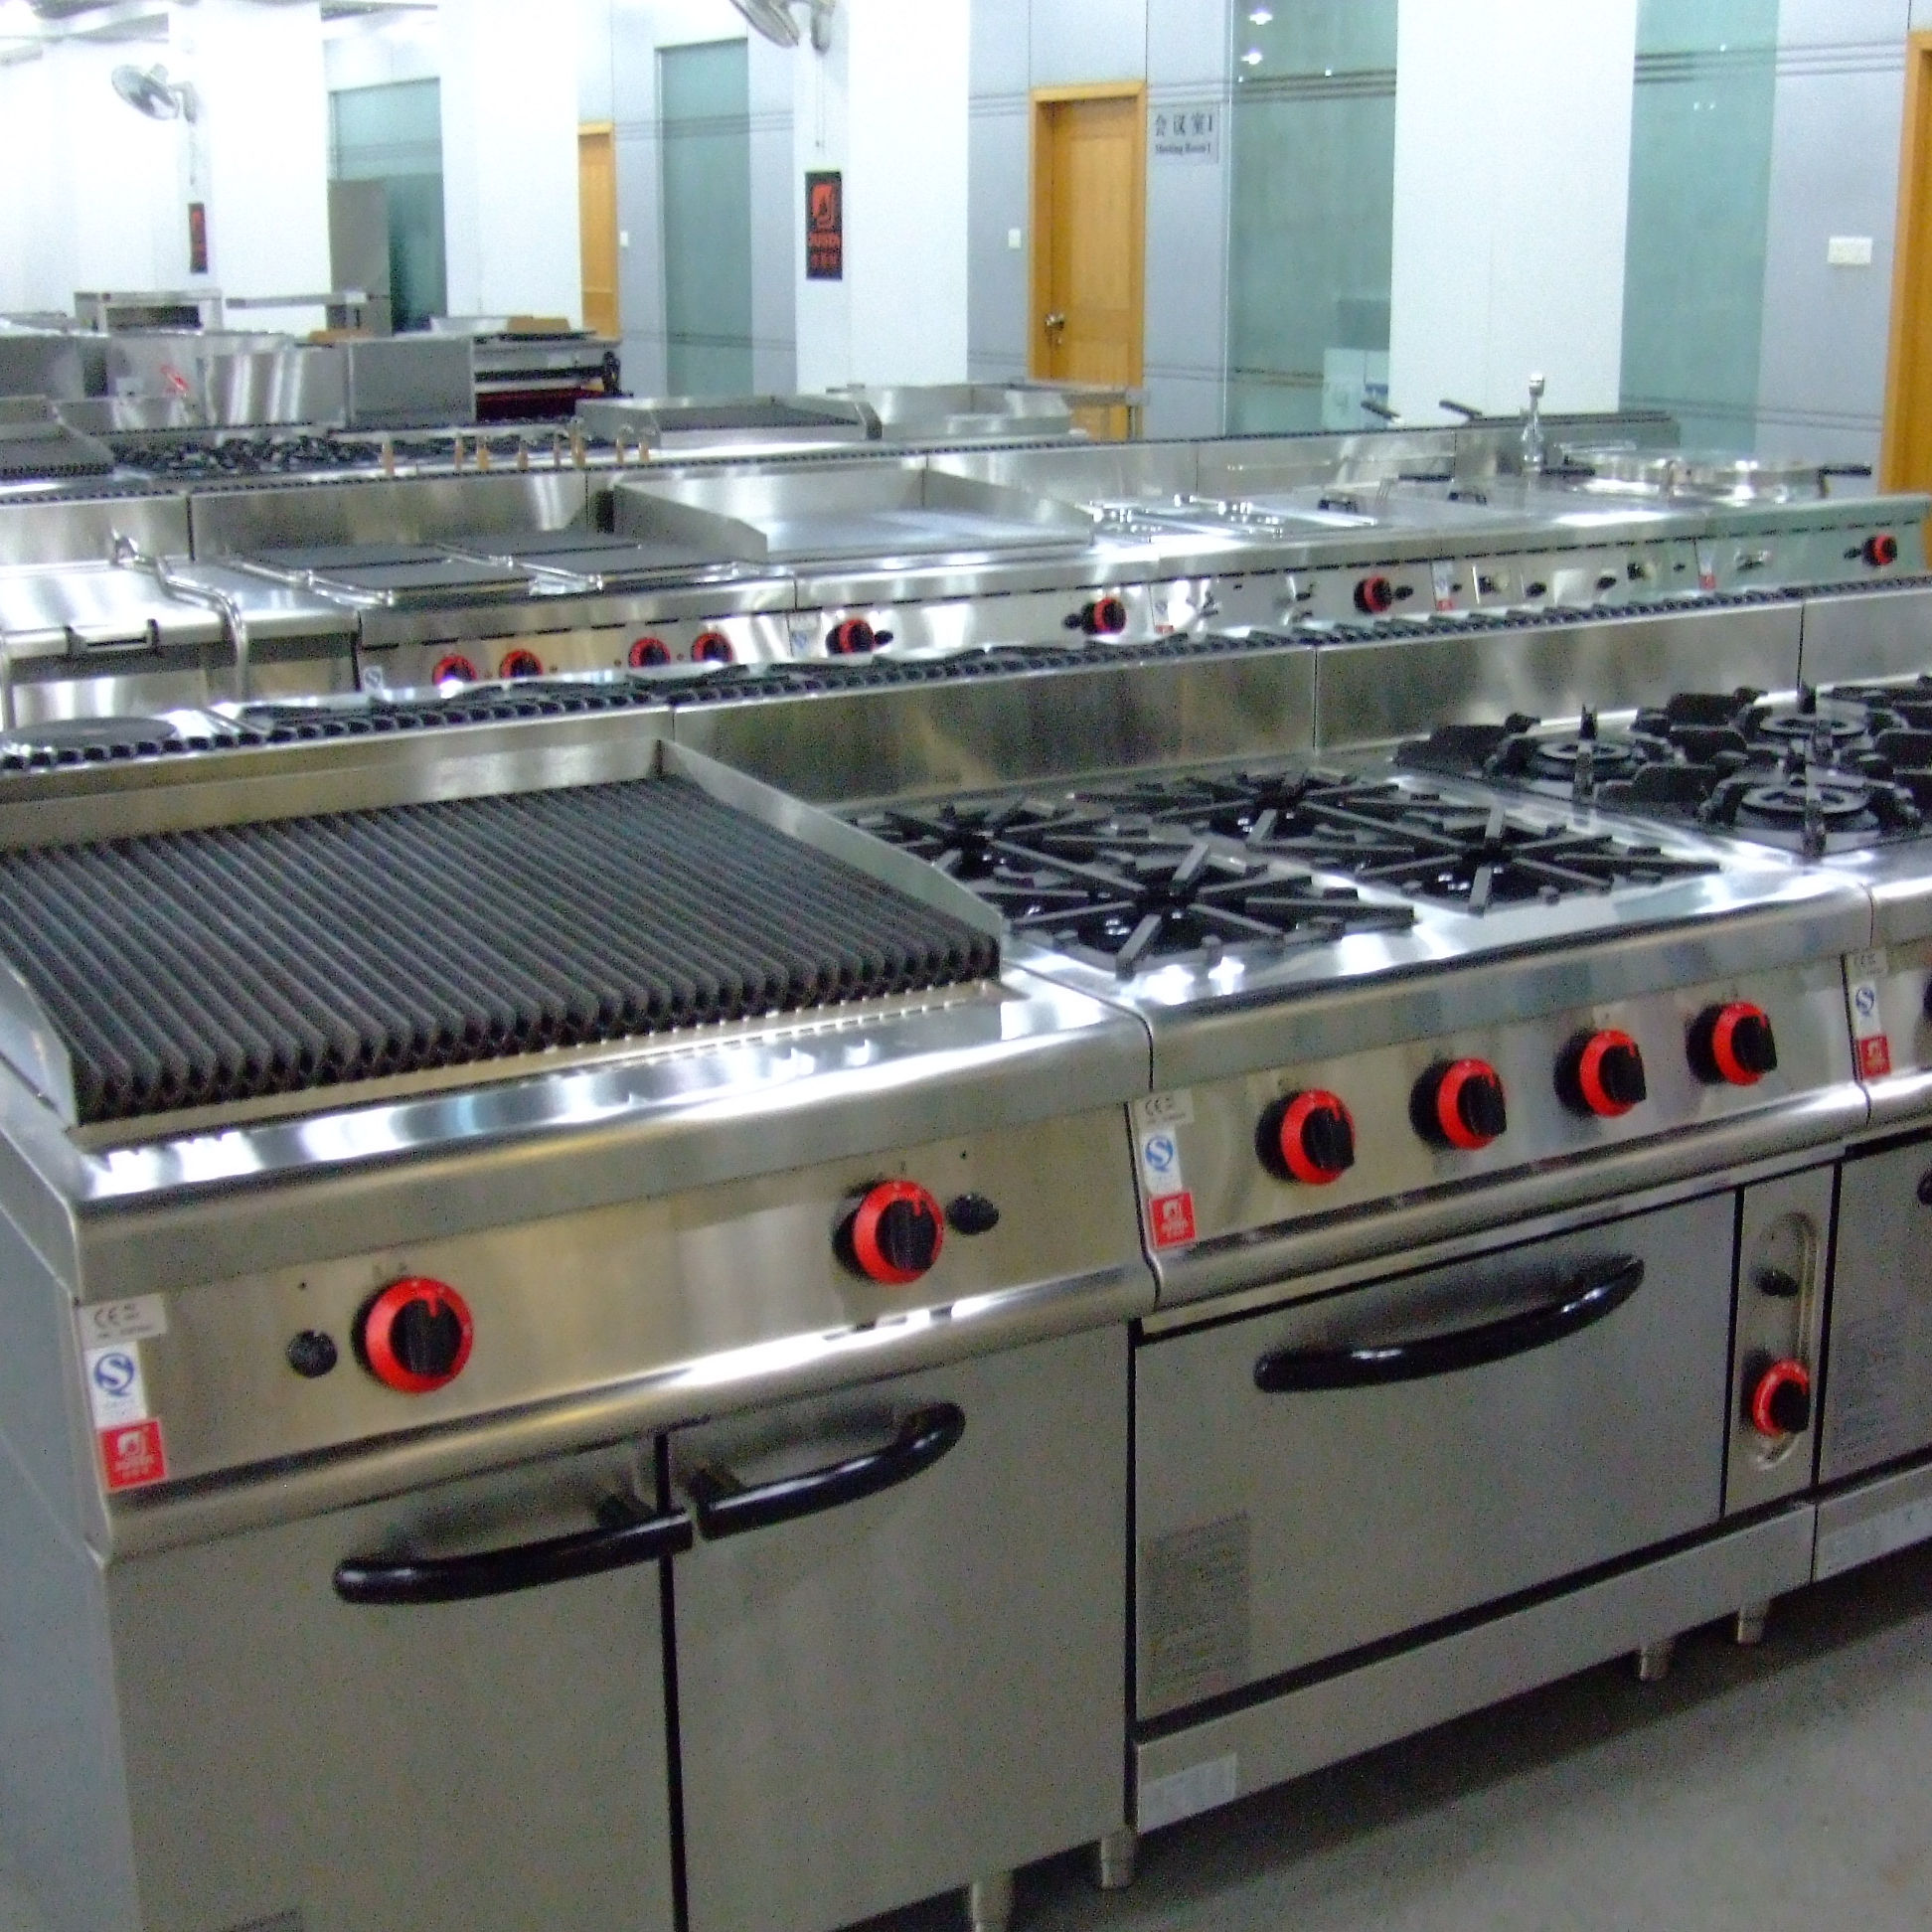 Commercial Hotel Kitchen Project Commercial western cooking kitchen equipment design and restaurant kitchen project